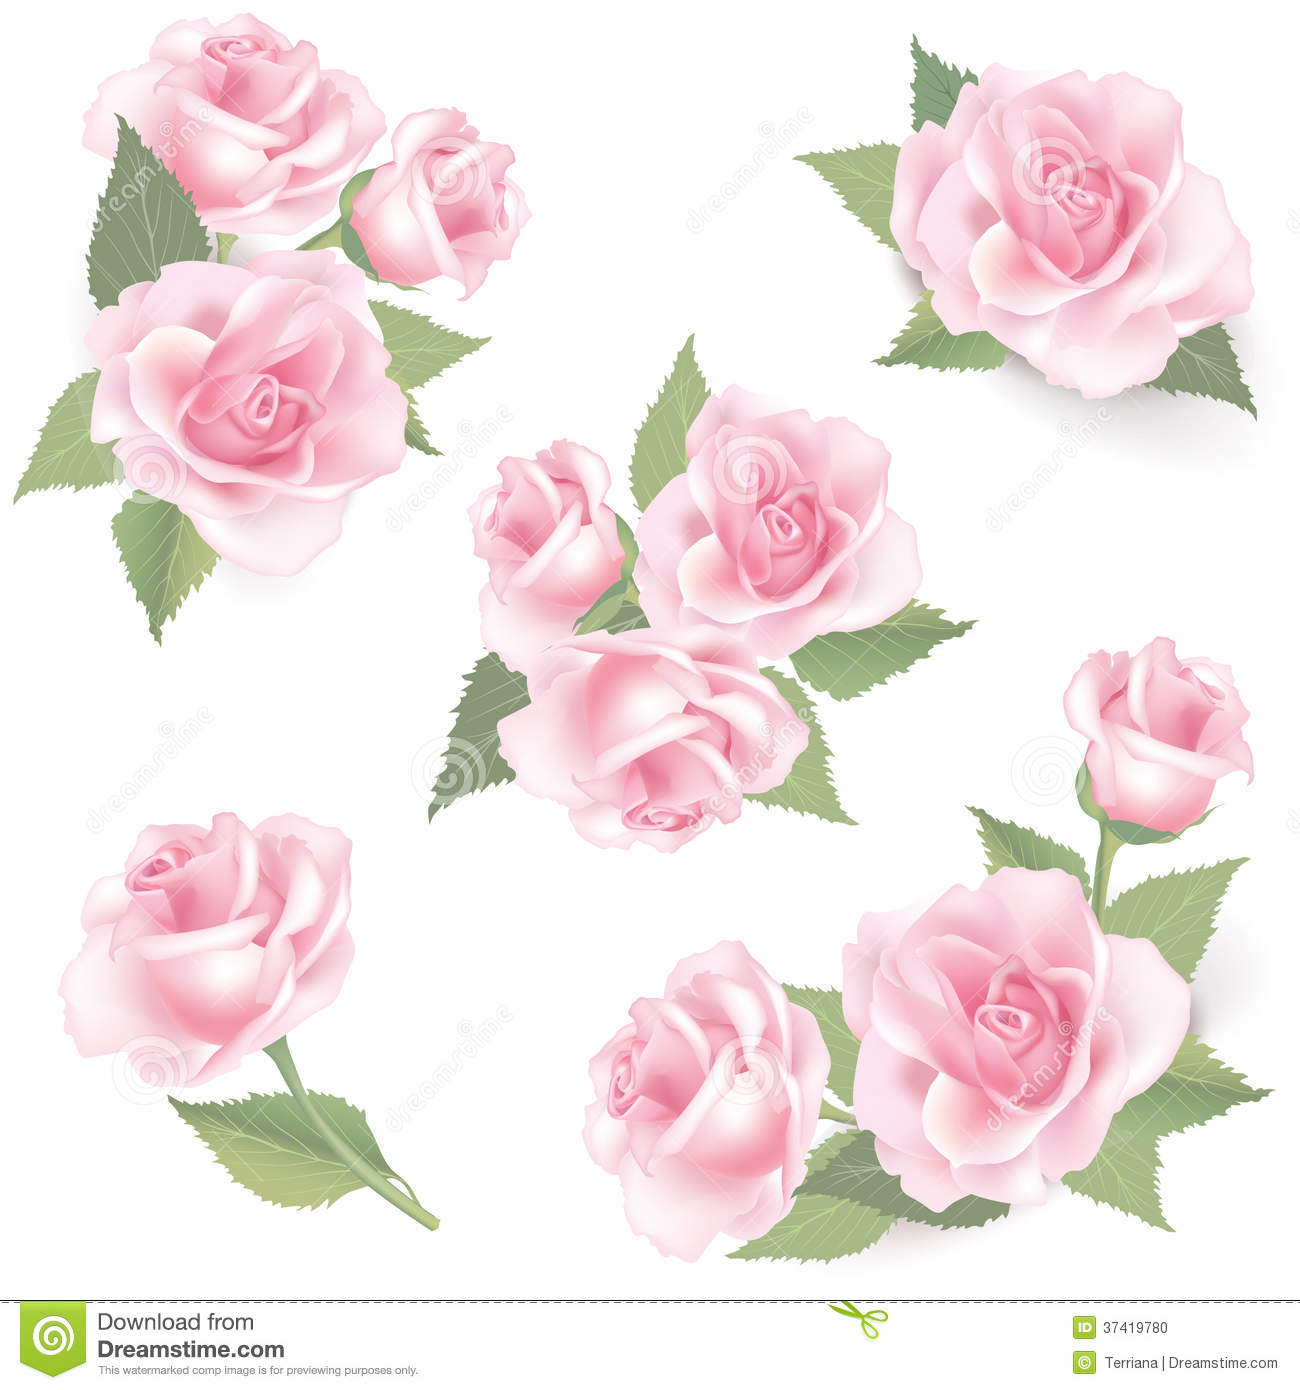 Flower rose set on white background floral decor stock for Cadre floral mural